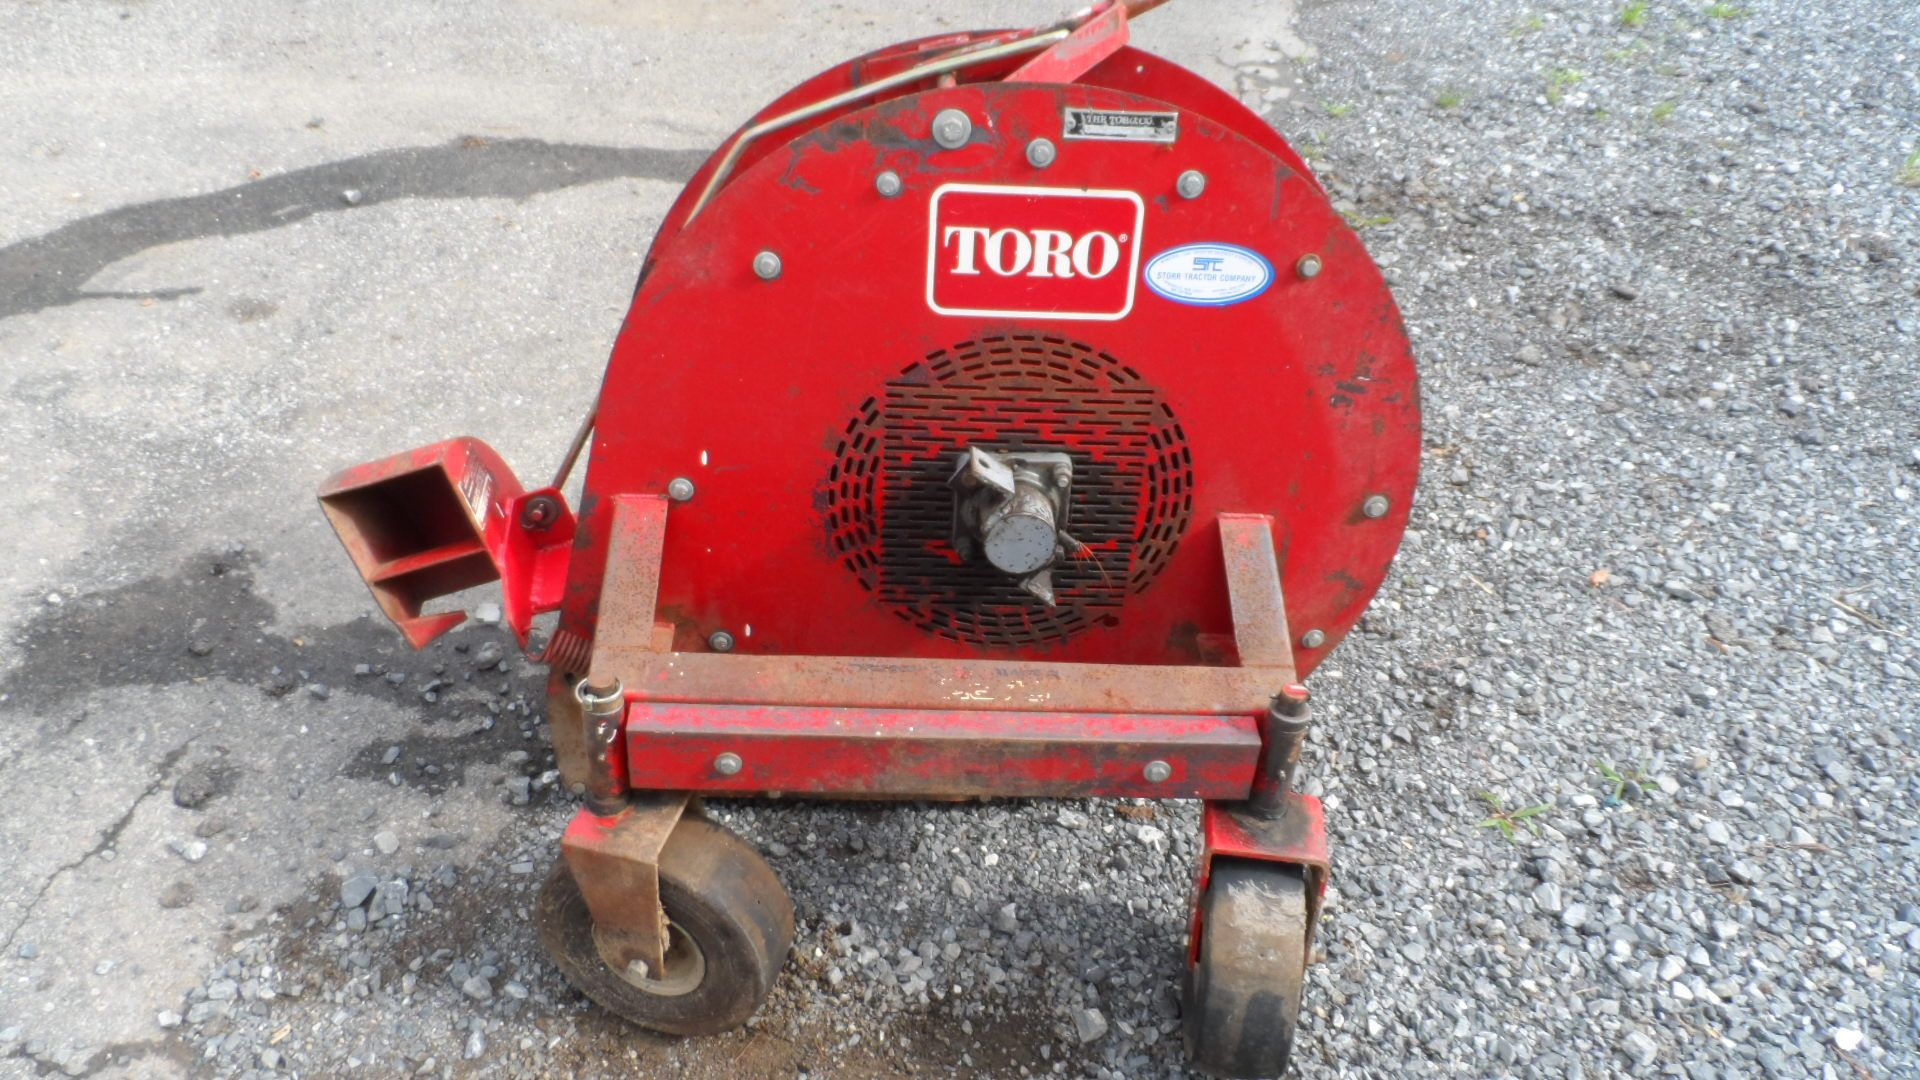 Toro Blower 4534 In Good Condition The Paint Has Started To Flake Off The Back Side The Bearings Are Quiet And Also In Good Condition No Blowers Mower Sale